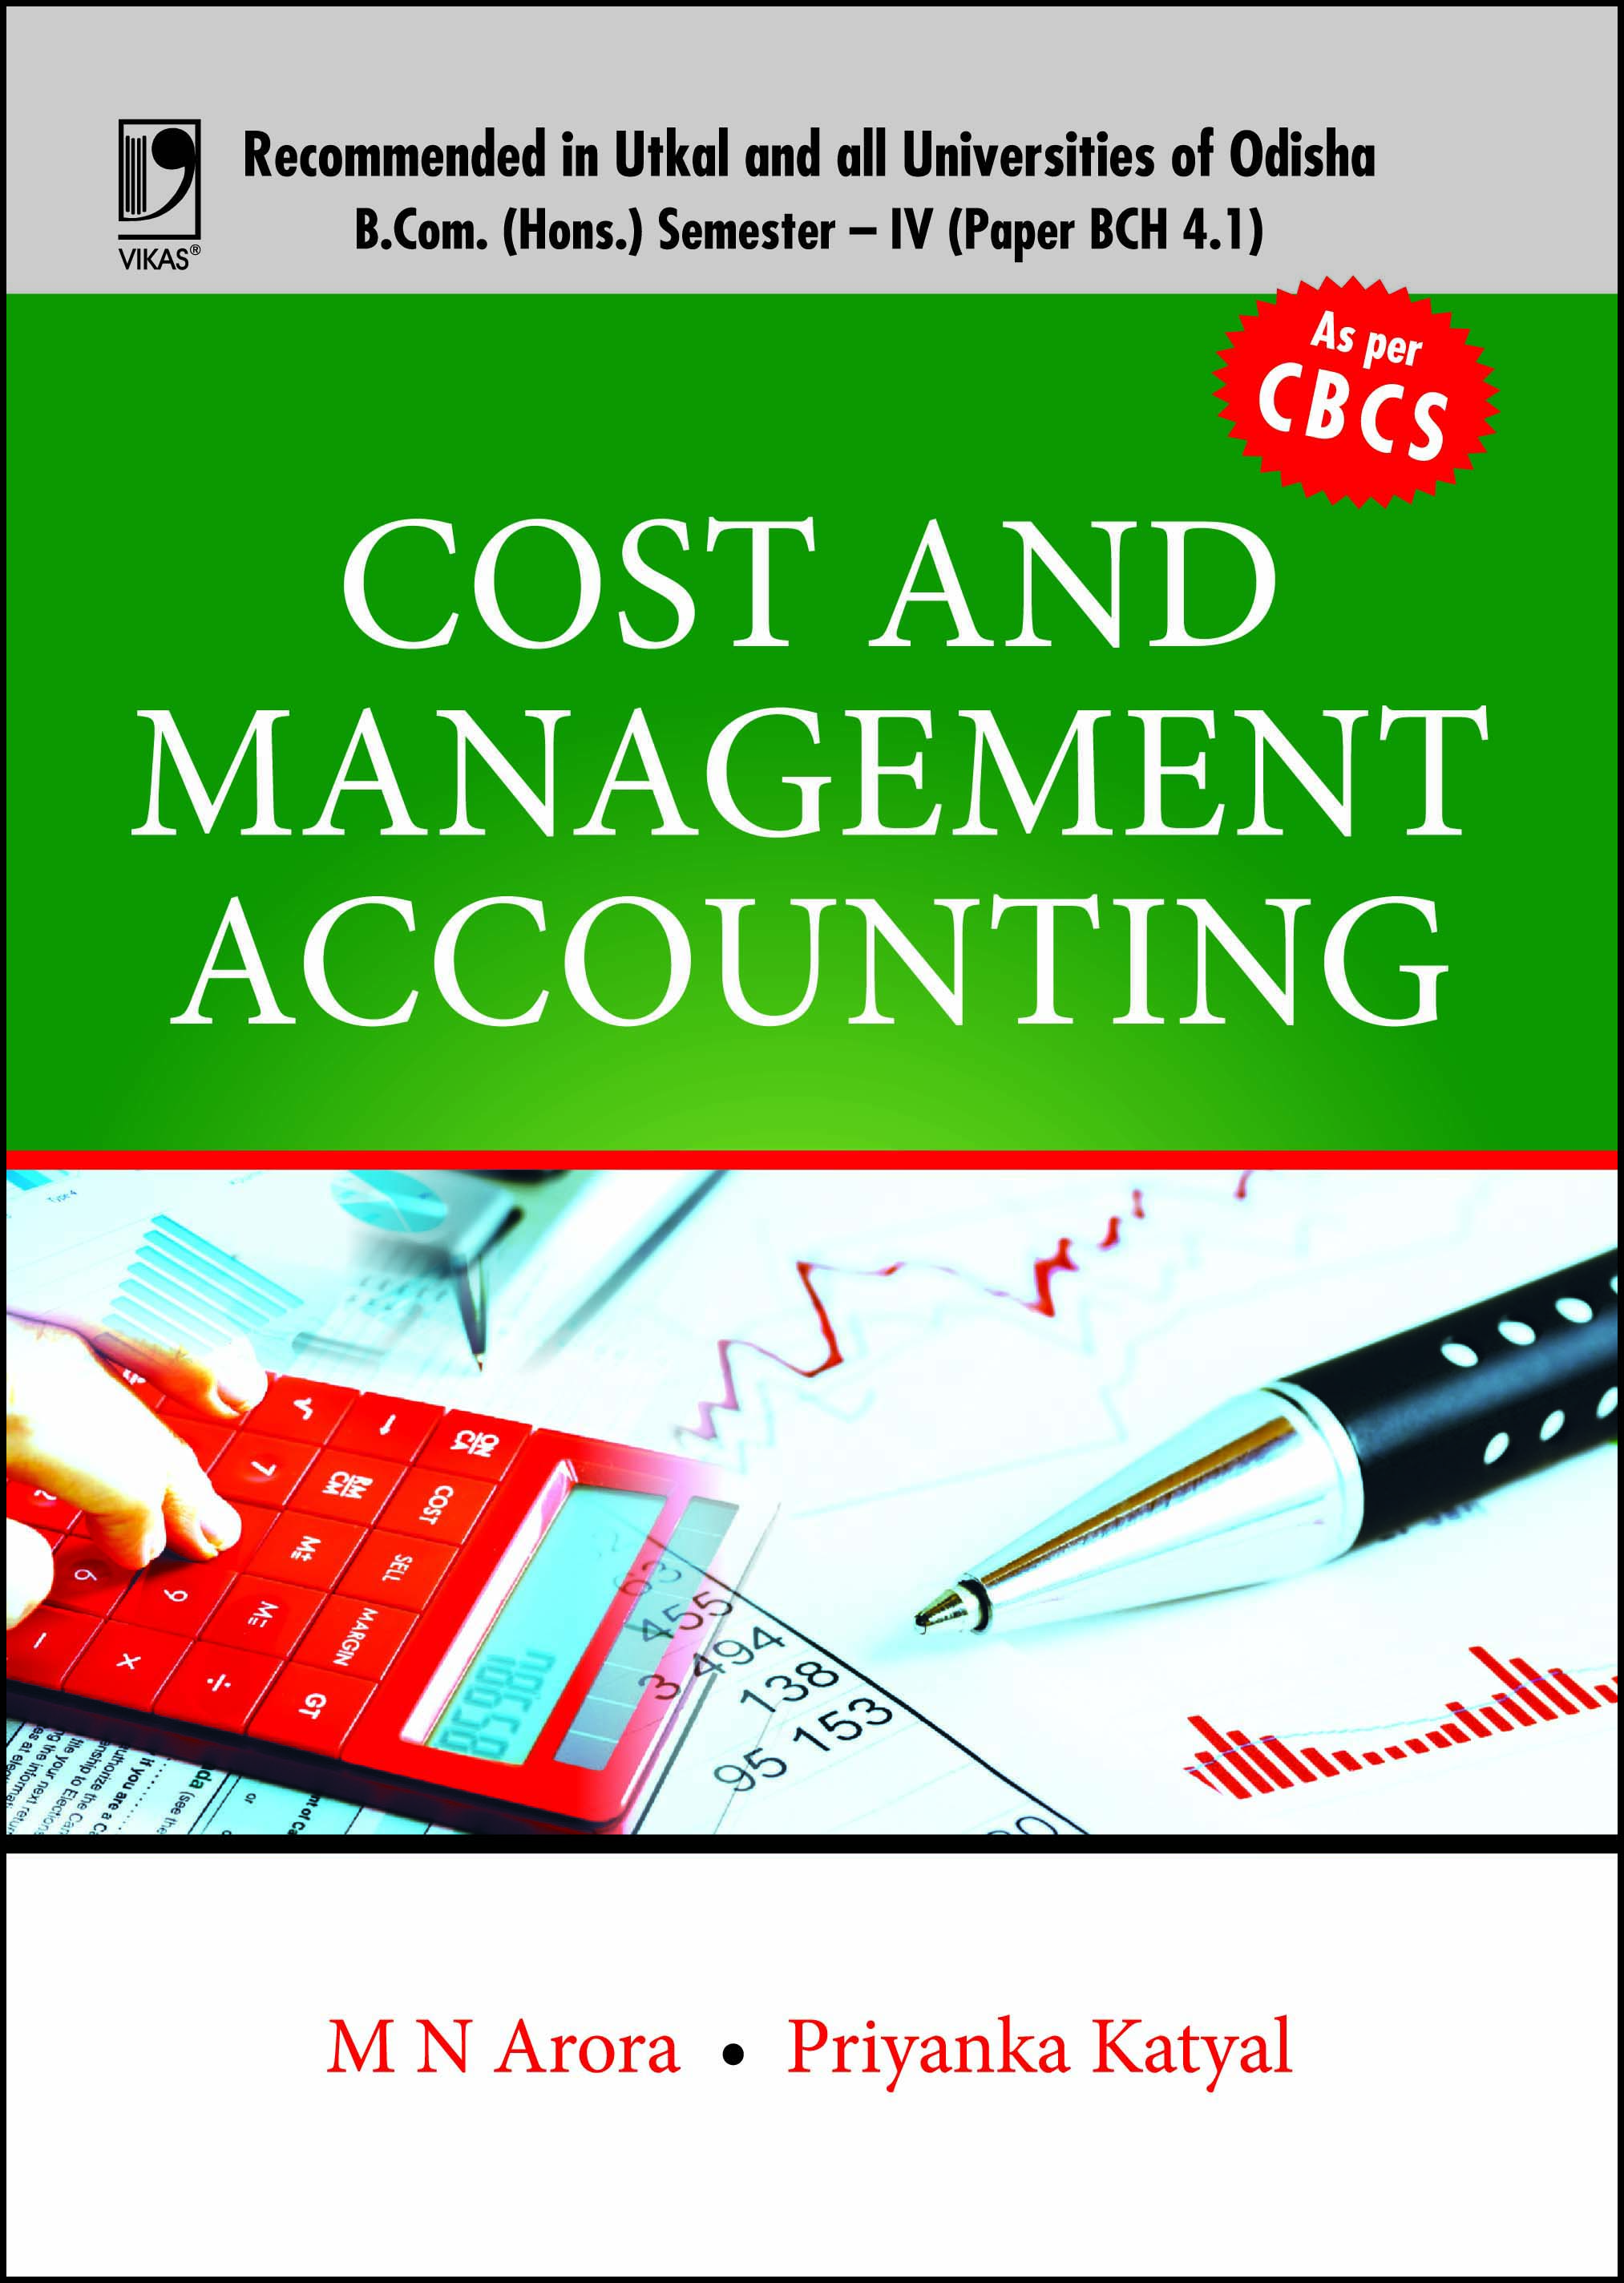 o case 1 3 politicalization of accounting standards Accounting firm about the impact of possibly changing financial accounting in this country so that all reporting abides by international accounting rules rather than solely us standards 6.